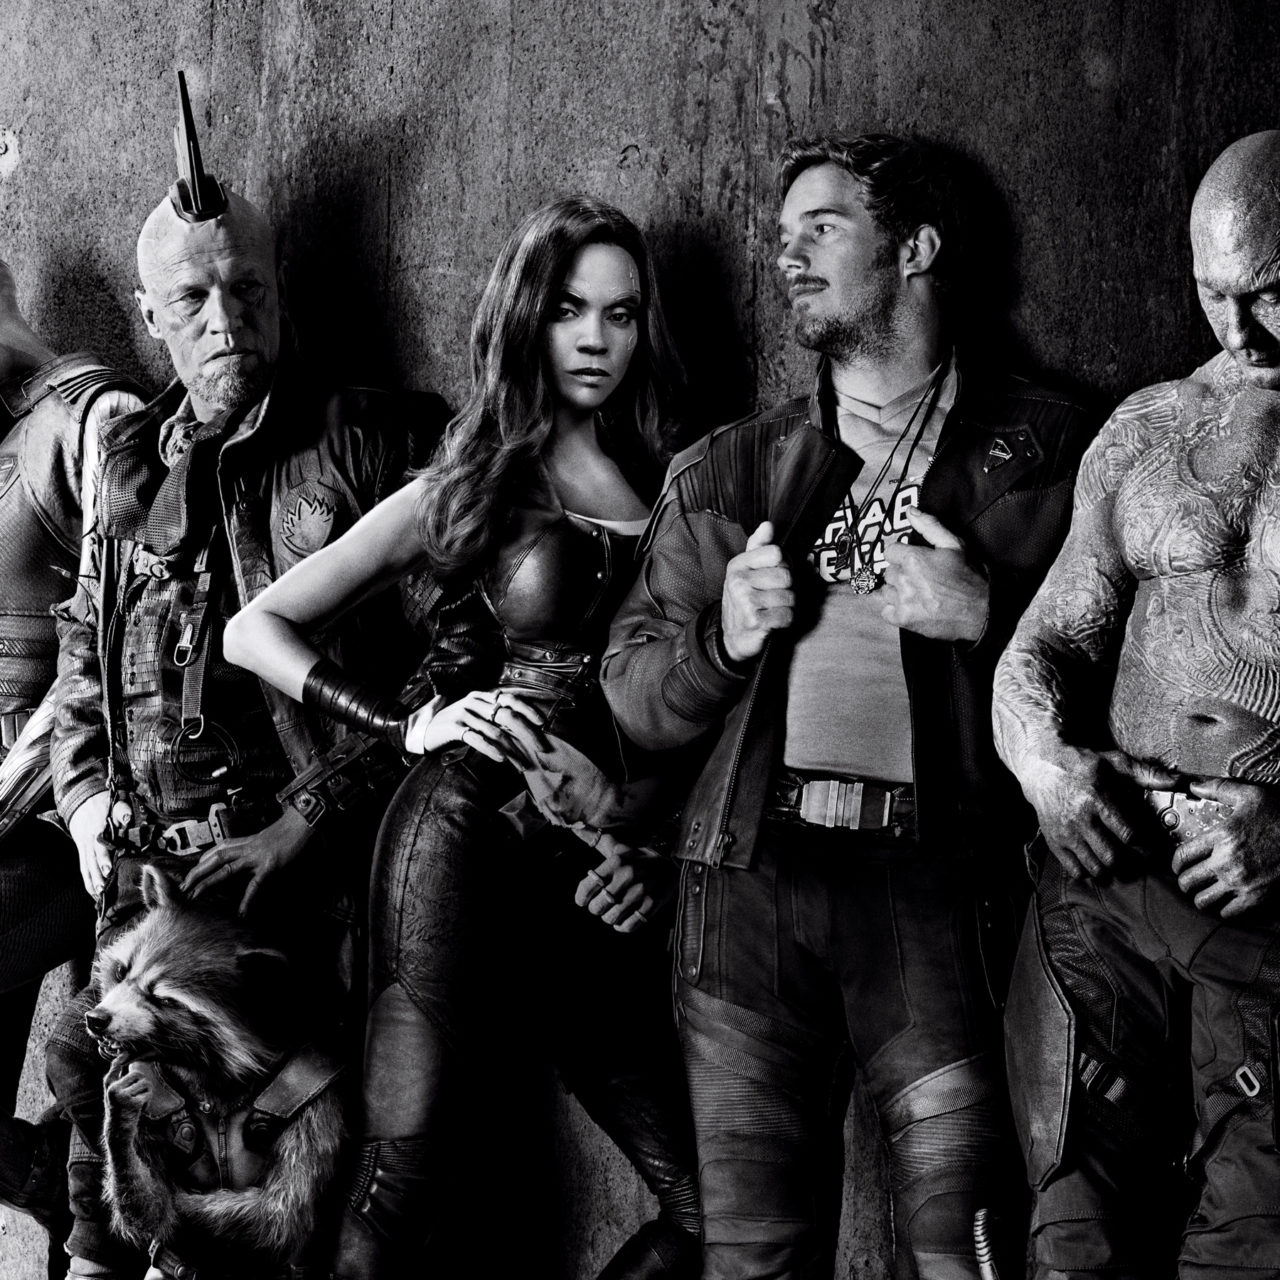 Guardians of the galaxy vol 2 5k wallpapers hd wallpapers - Guardians of the galaxy 2 8k ...